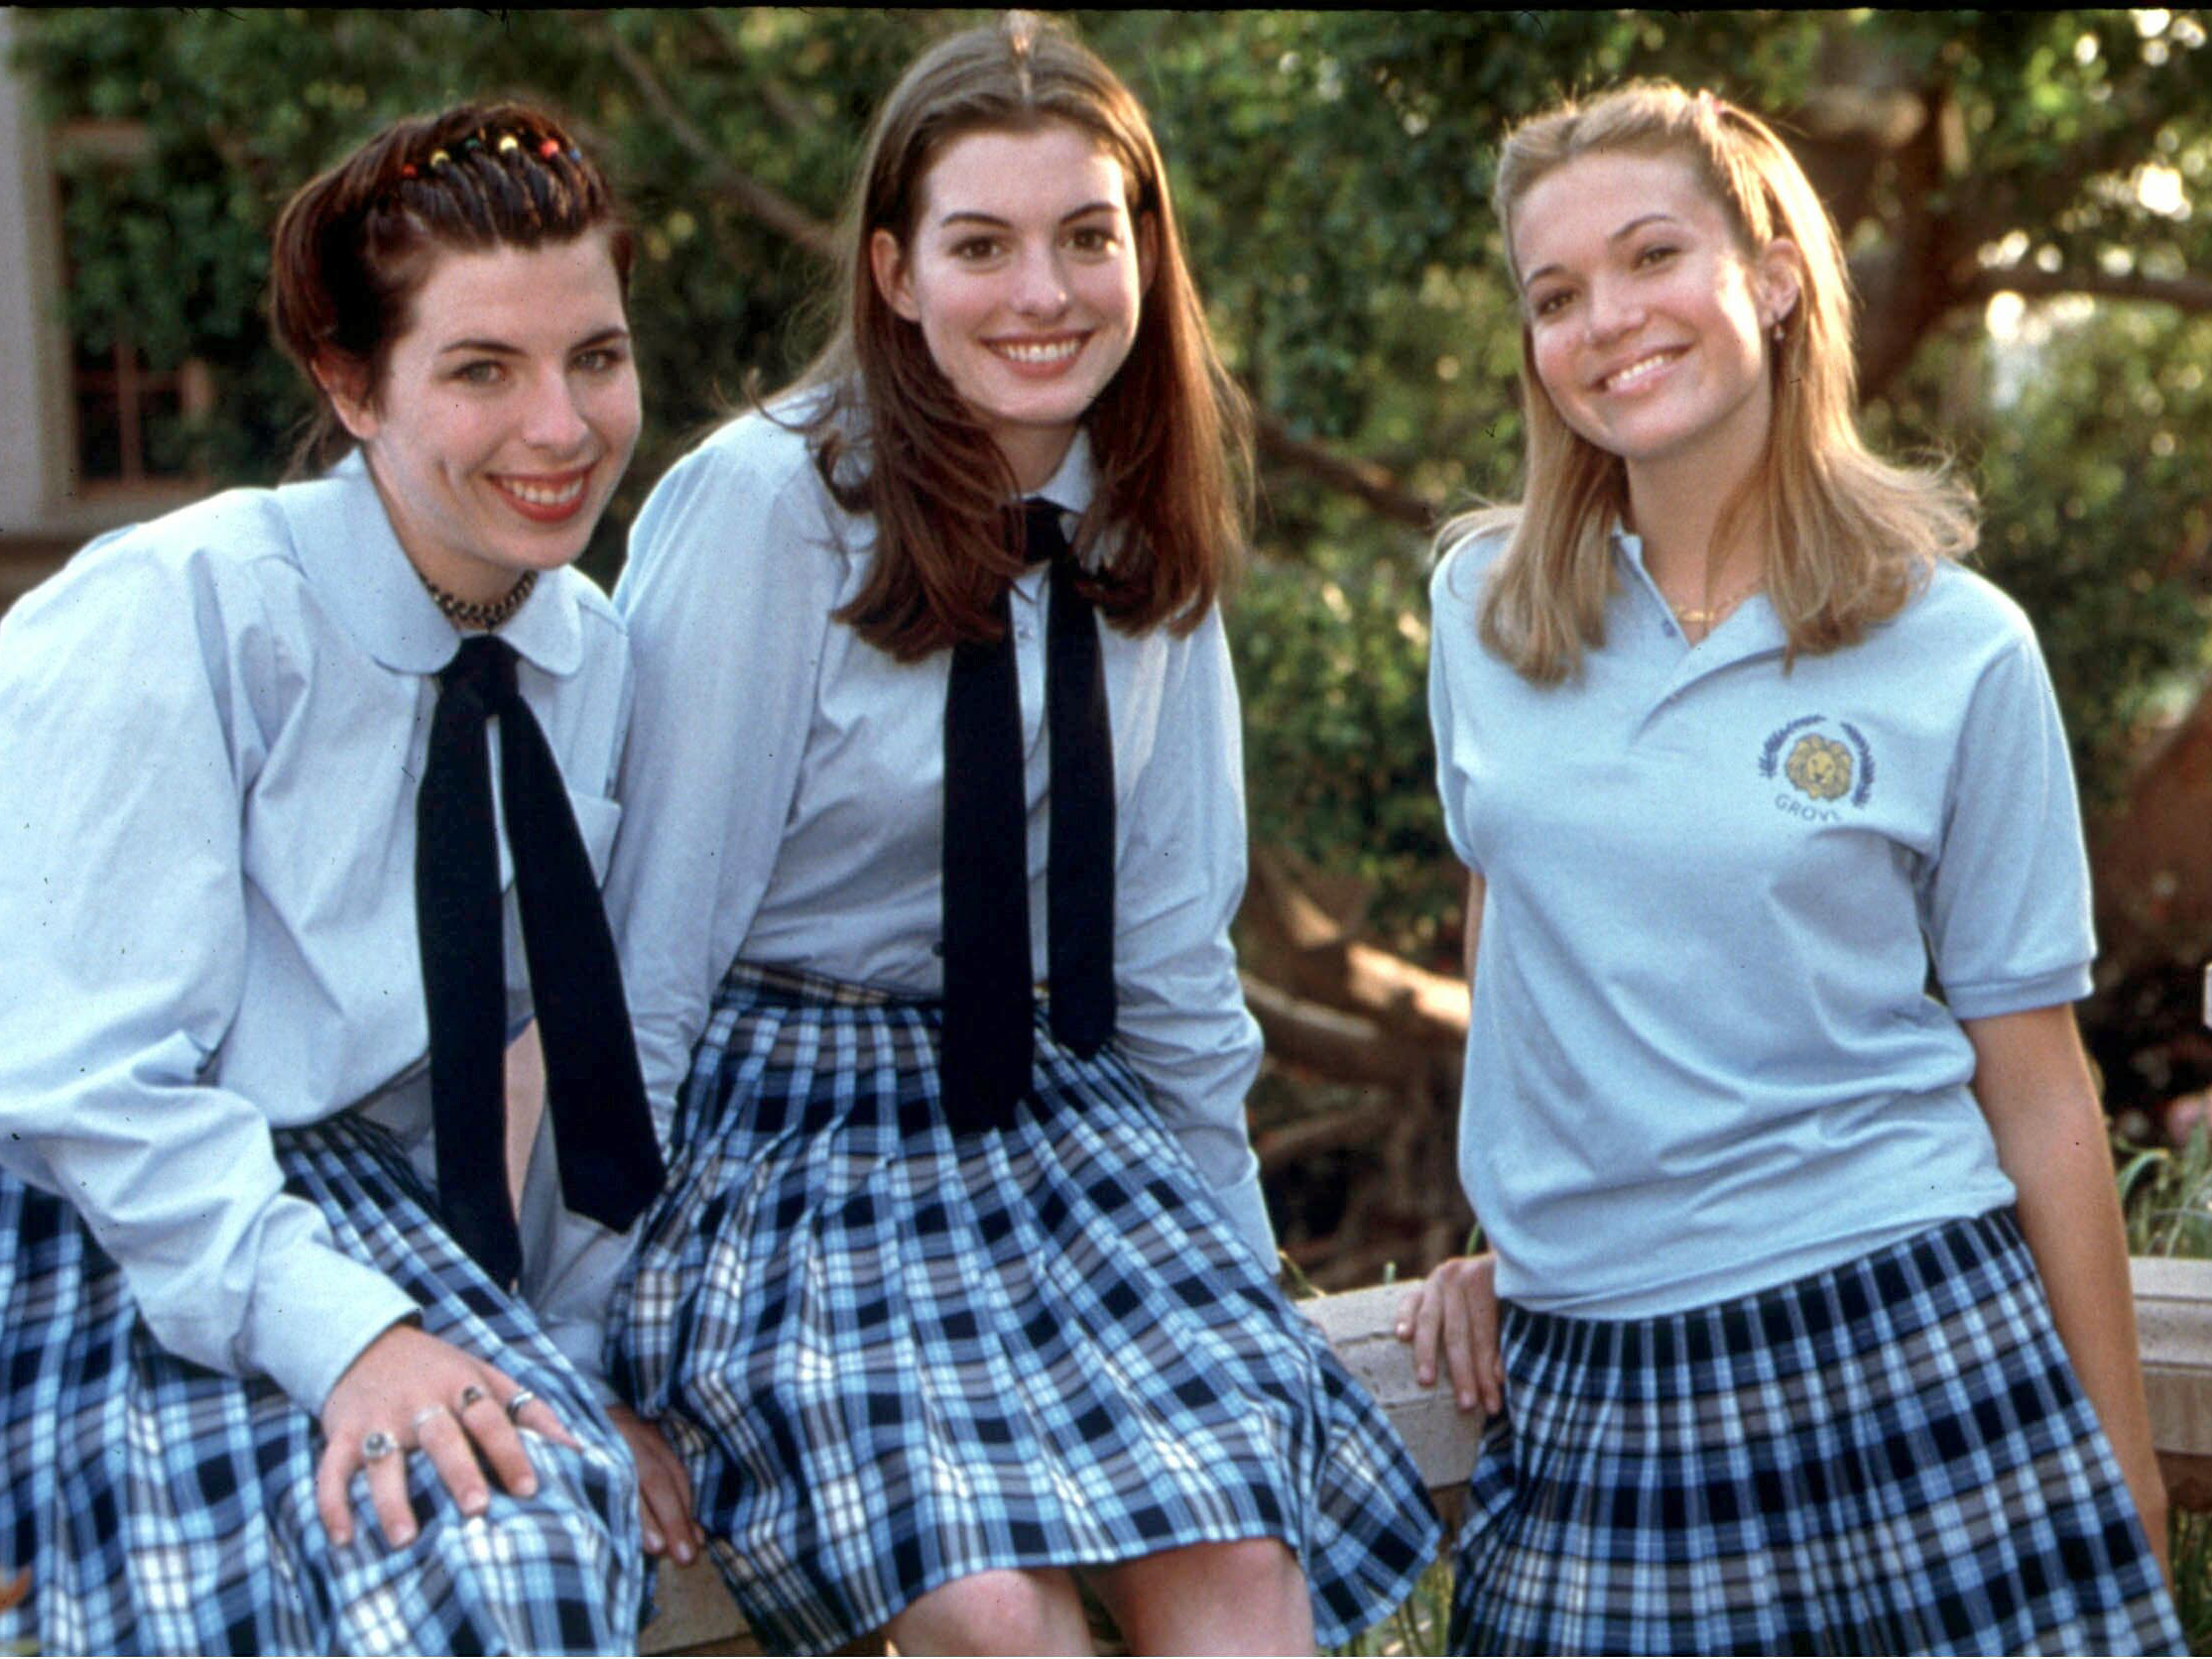 Remarkable, very anne hathaway school girl quite good